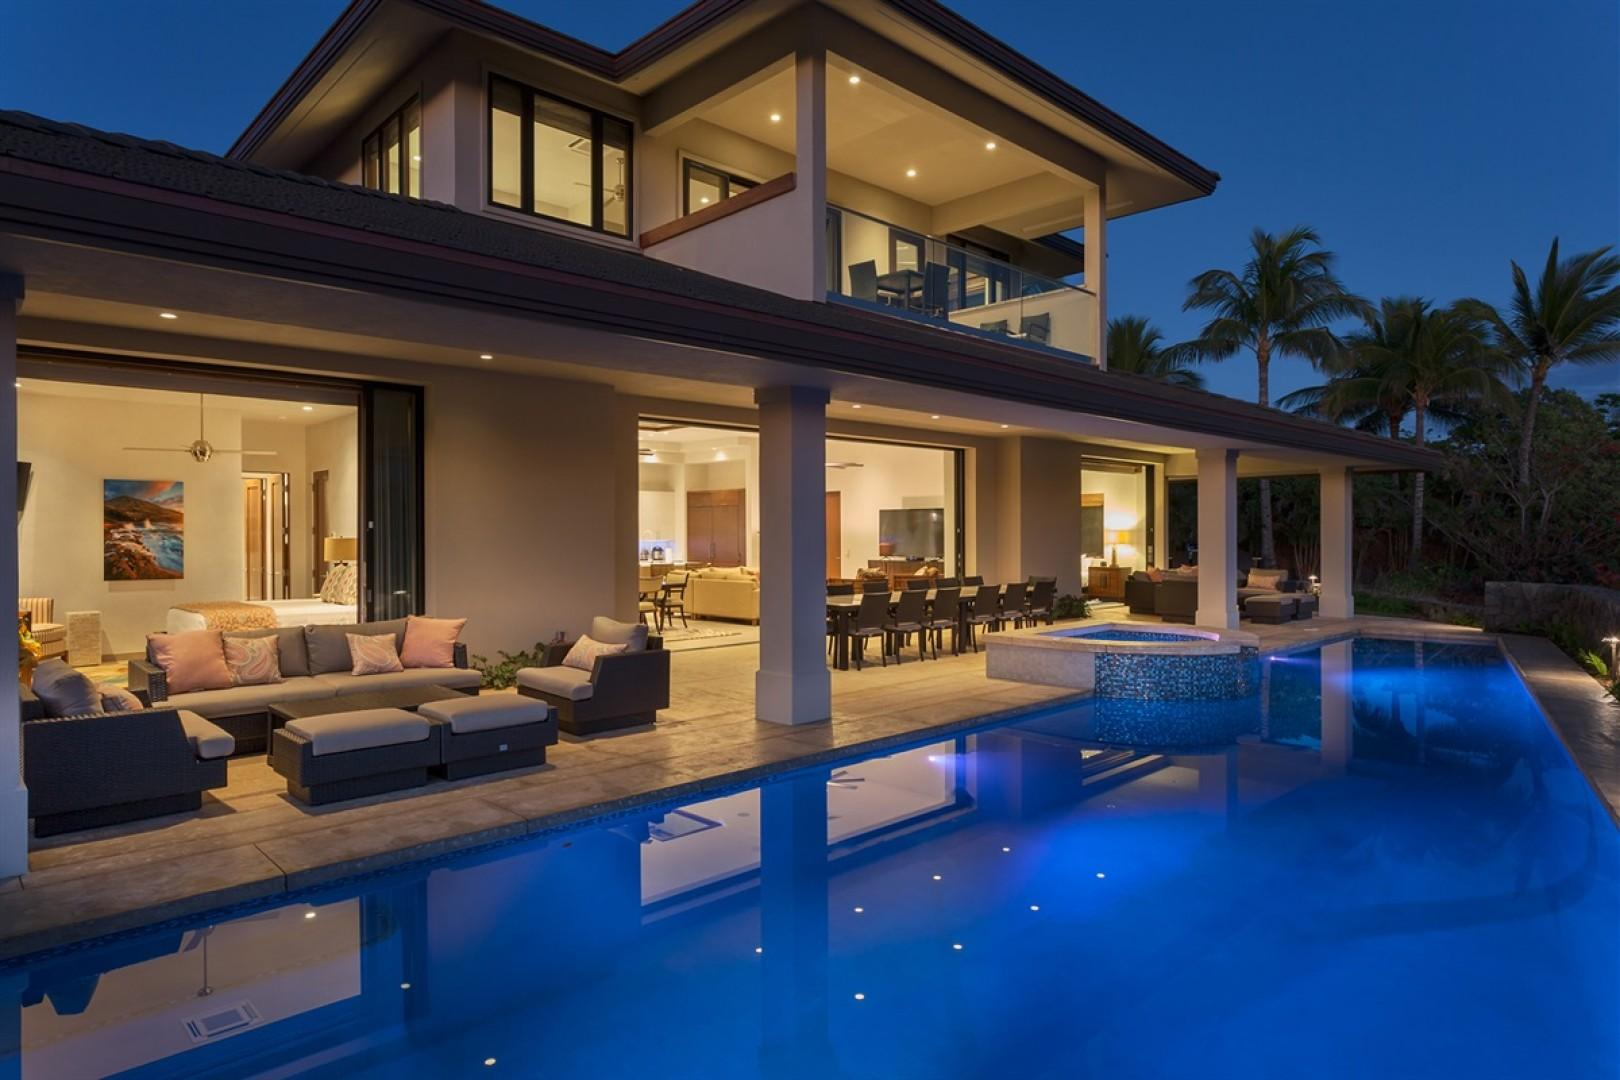 One of a kind location and home - private pool, spa, and expansive outdoor living at sunset.